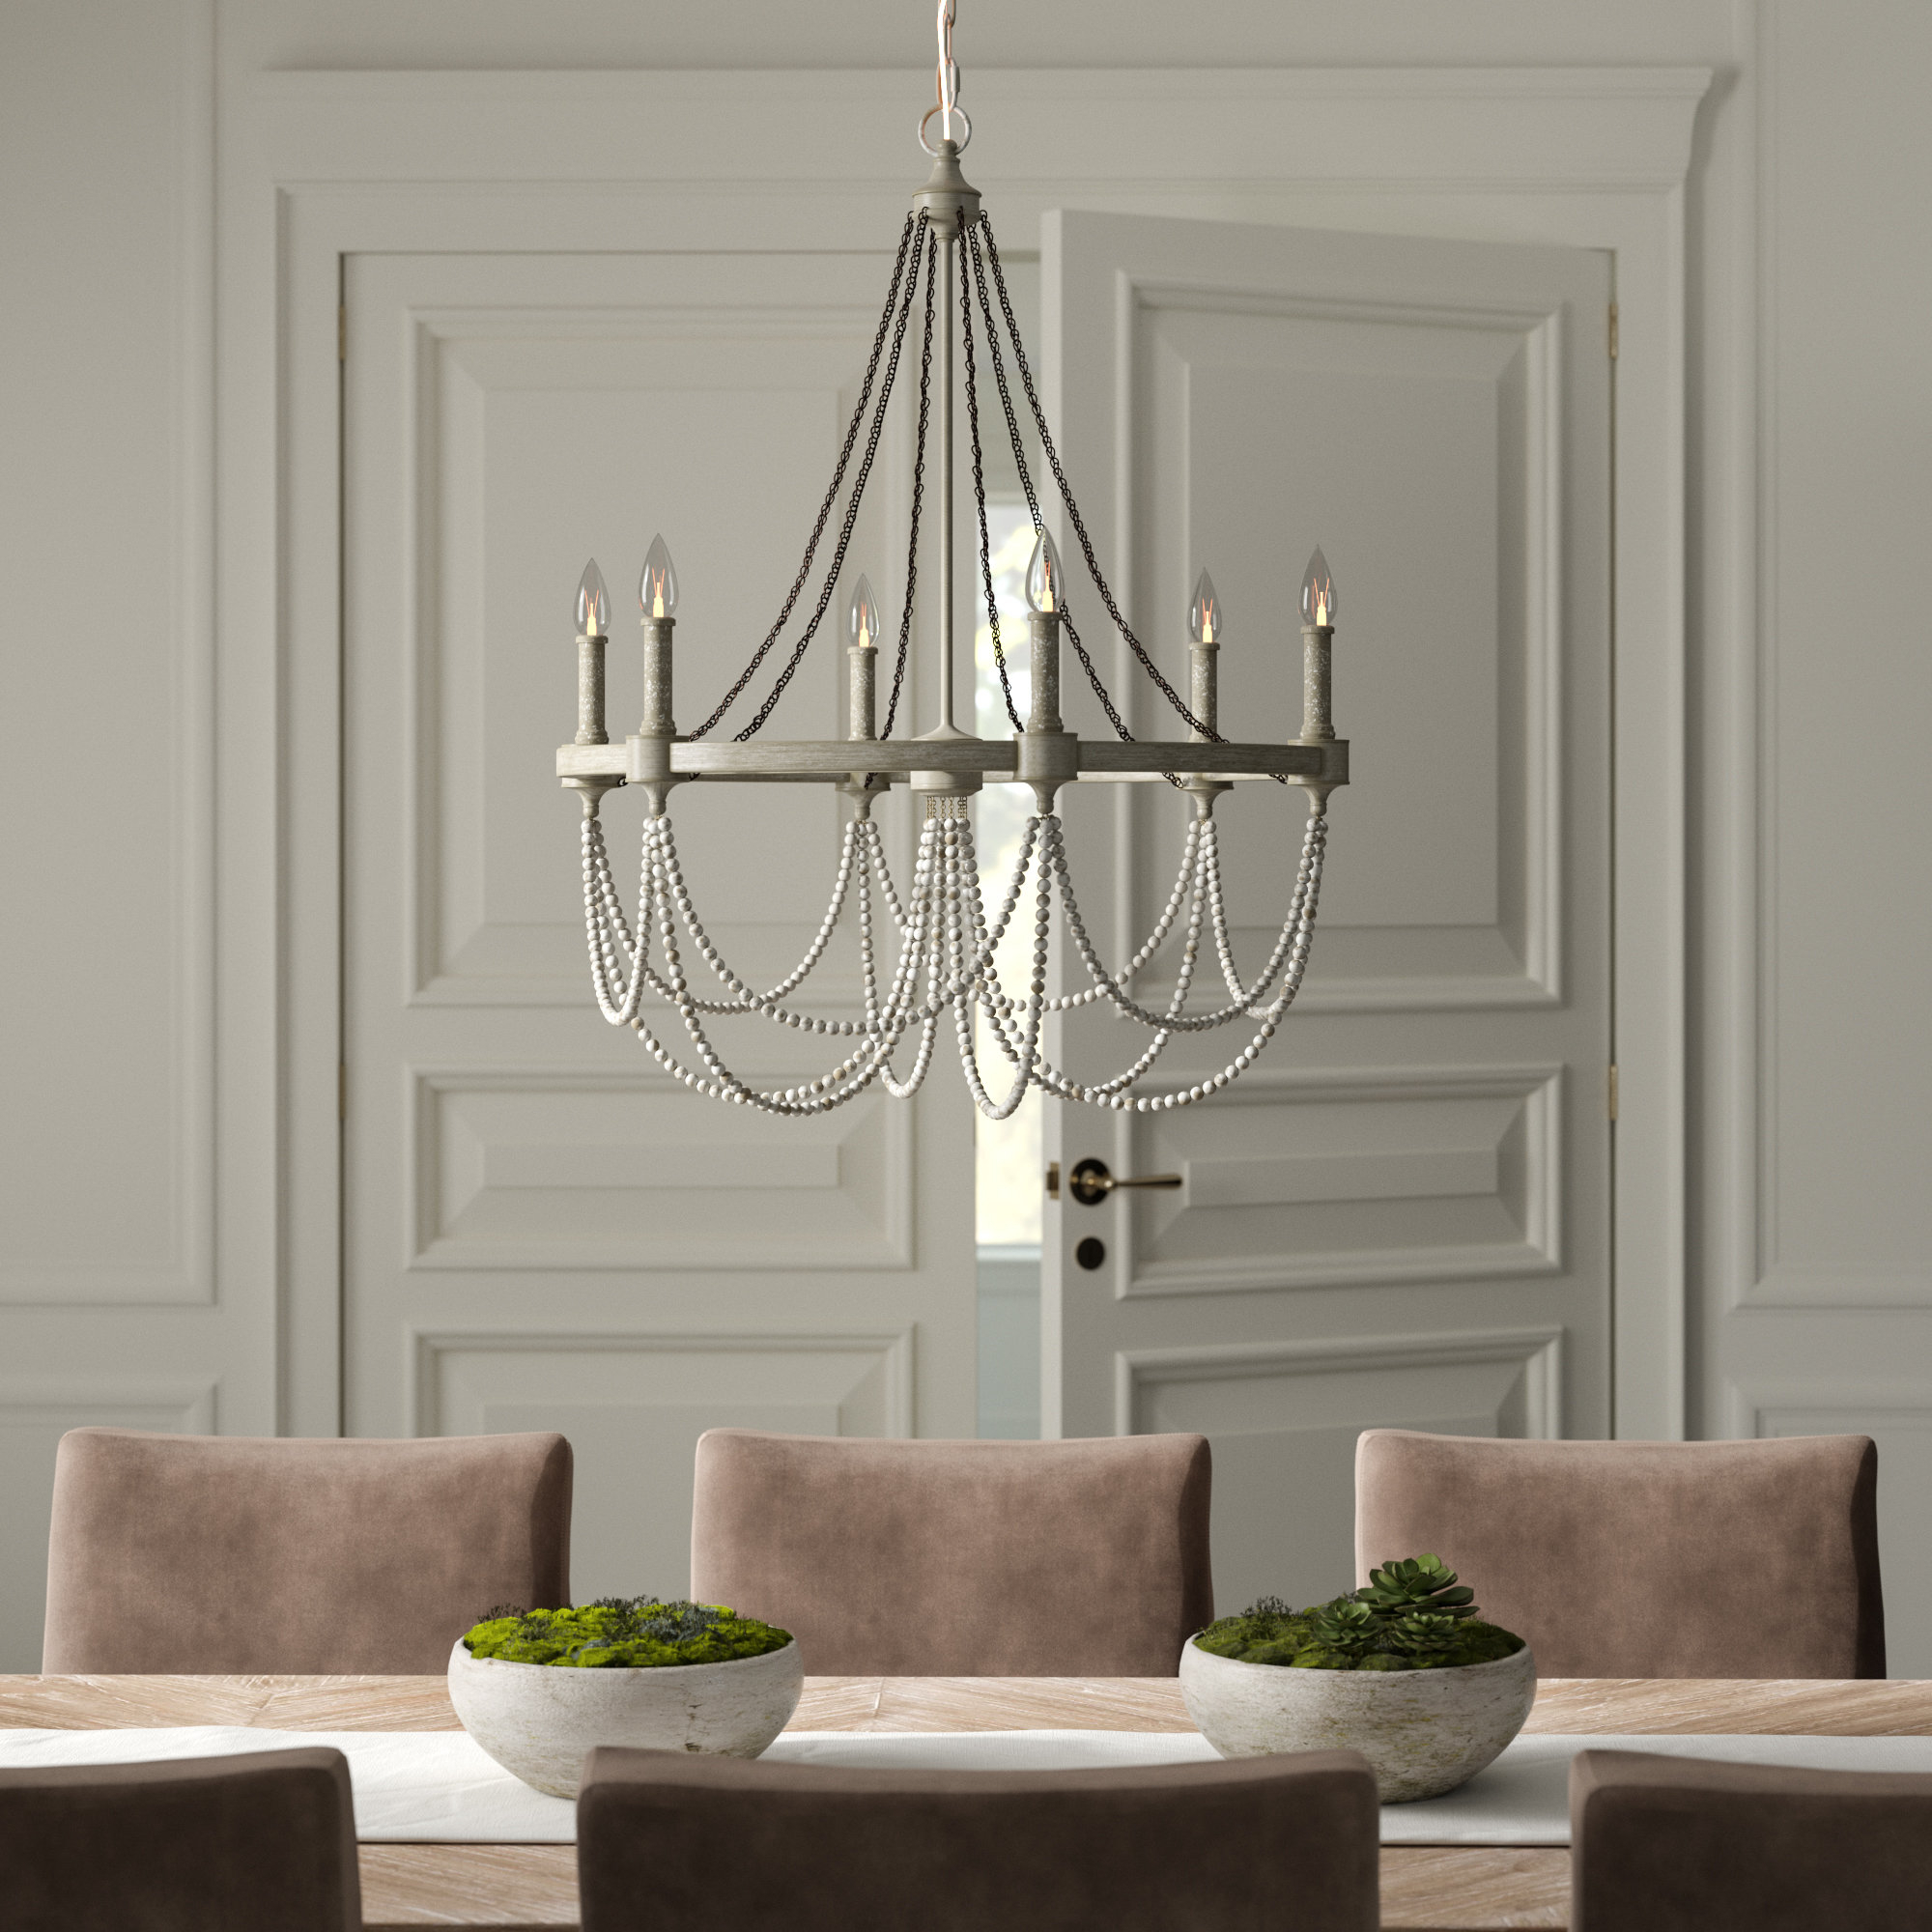 Fitzgibbon 6 Light Candle Style Chandelier For Newest Watford 6 Light Candle Style Chandeliers (View 3 of 20)